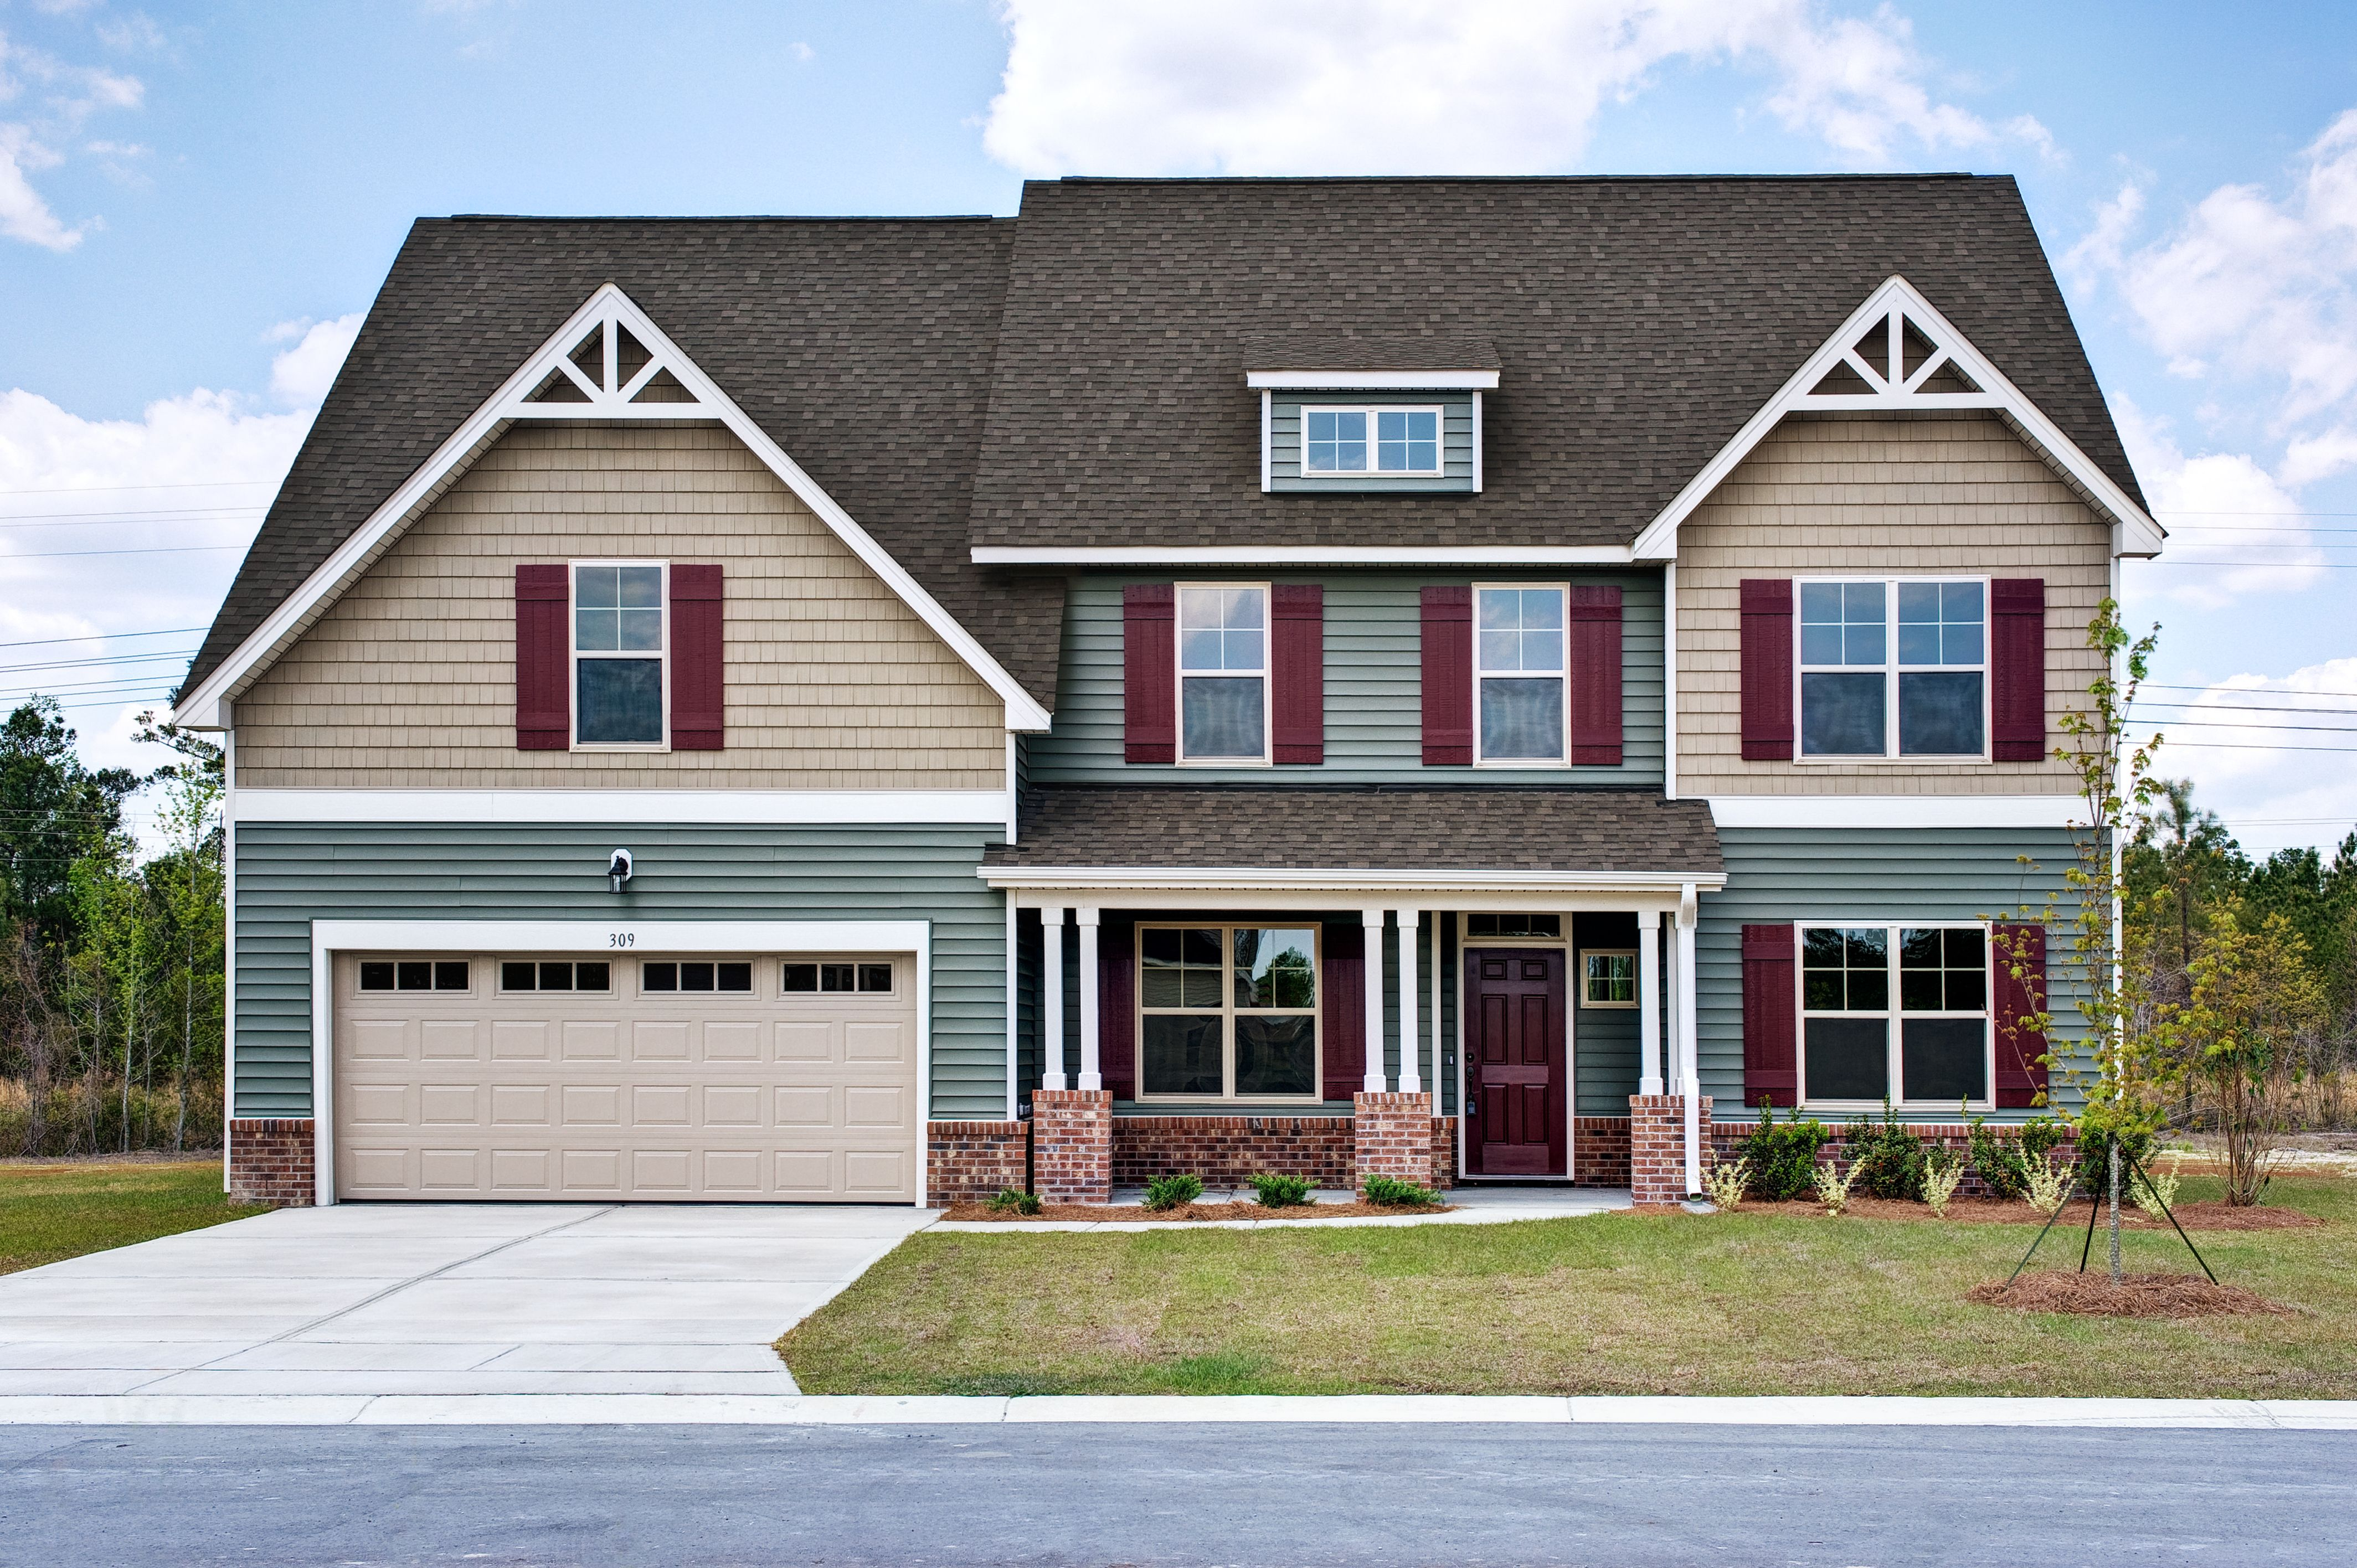 Exterior home colors with shutters - Explore Exterior Colors Exterior Paint And More